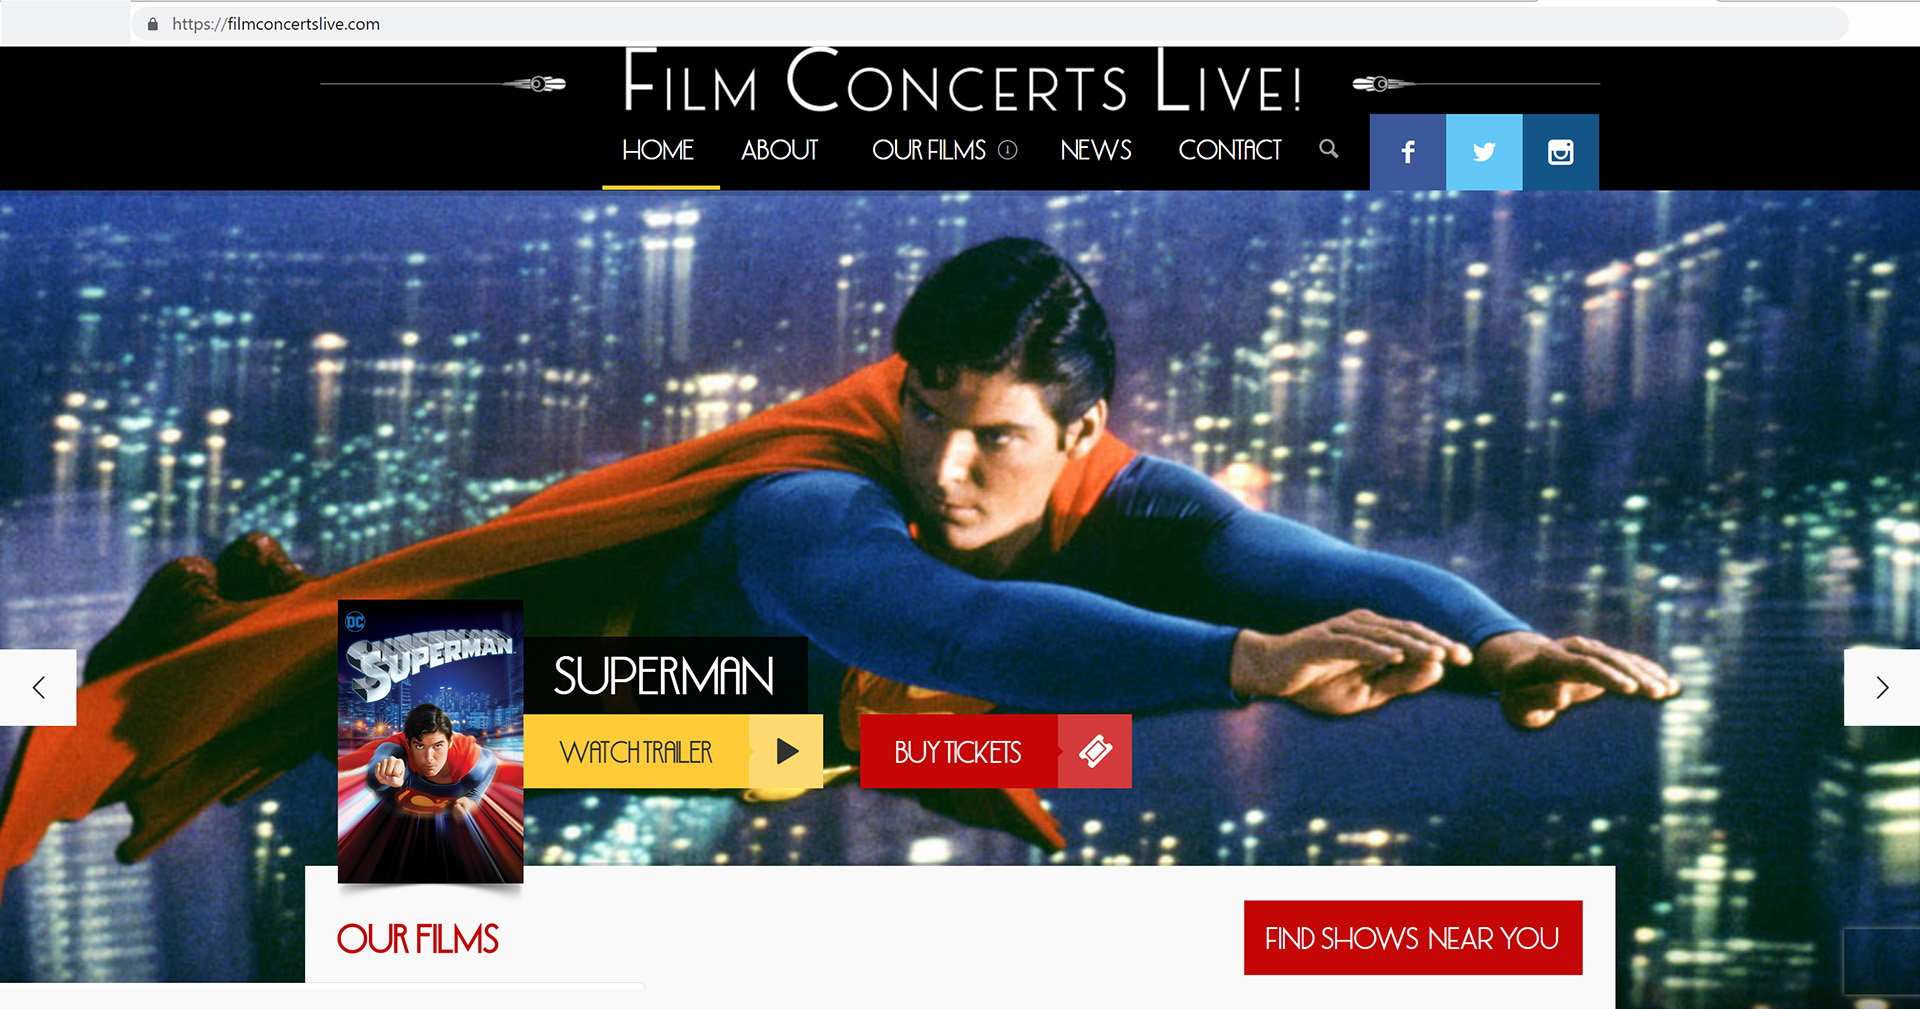 Film Concerts Live Presents Superman: The Movie!